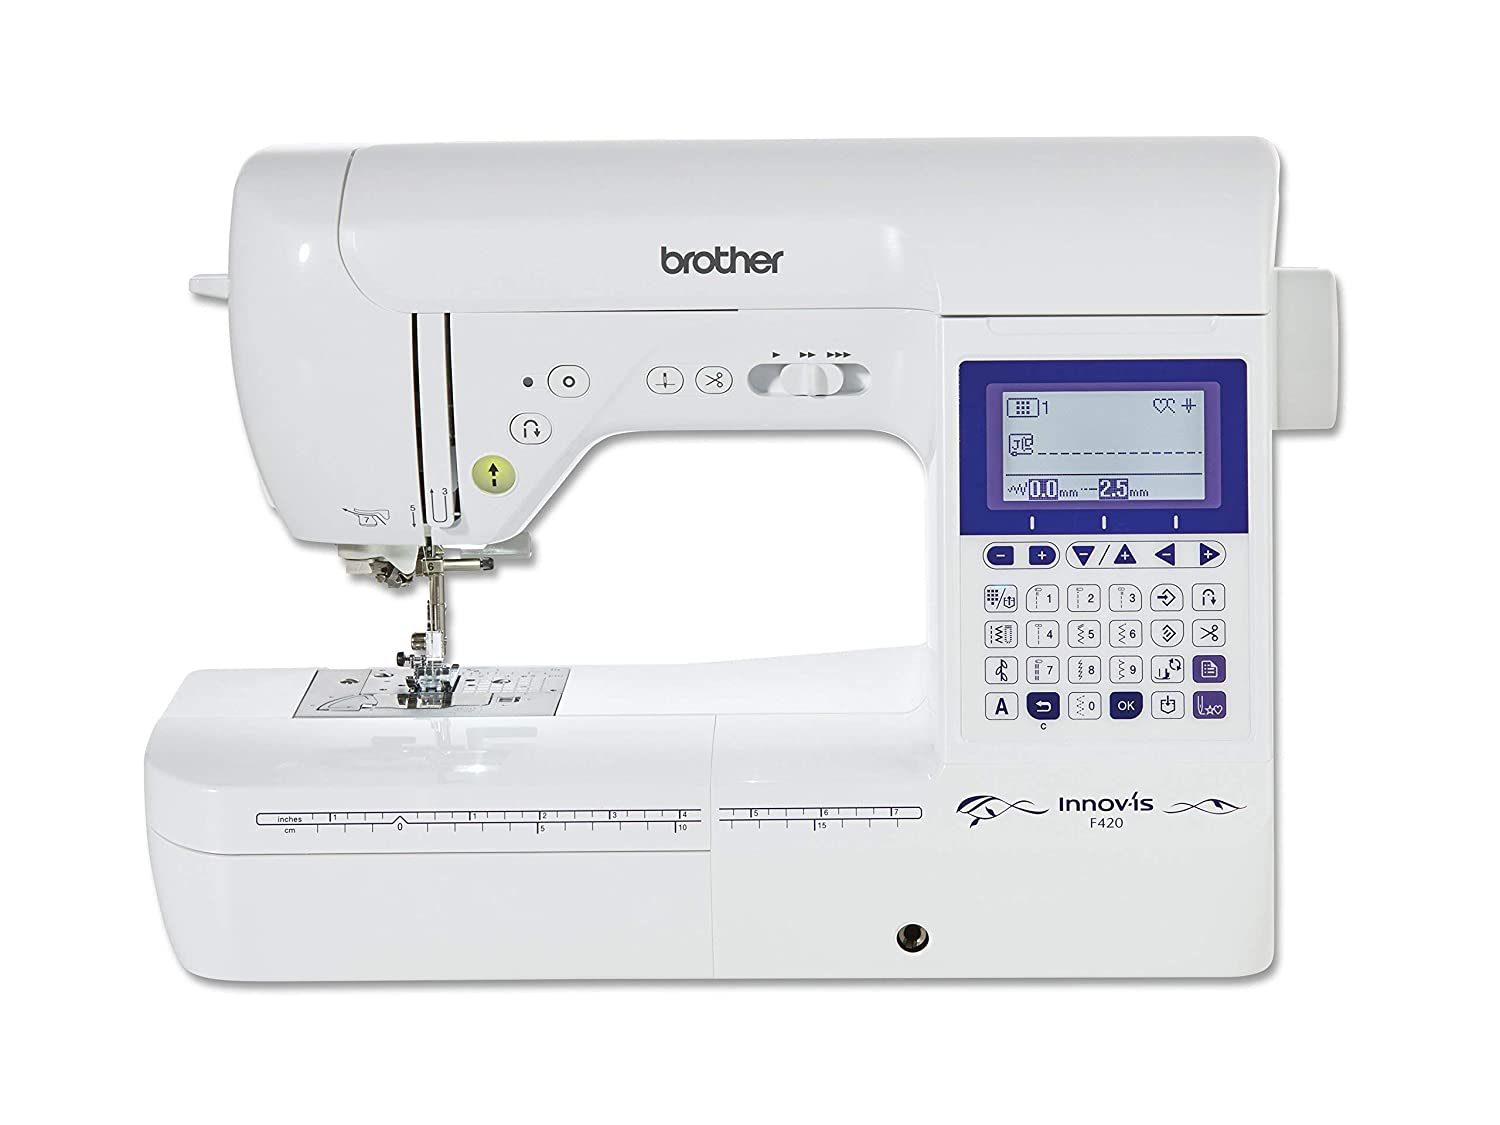 Brother Innovis F420 Máquina de Coser, Blanco, L: Amazon.es: Hogar